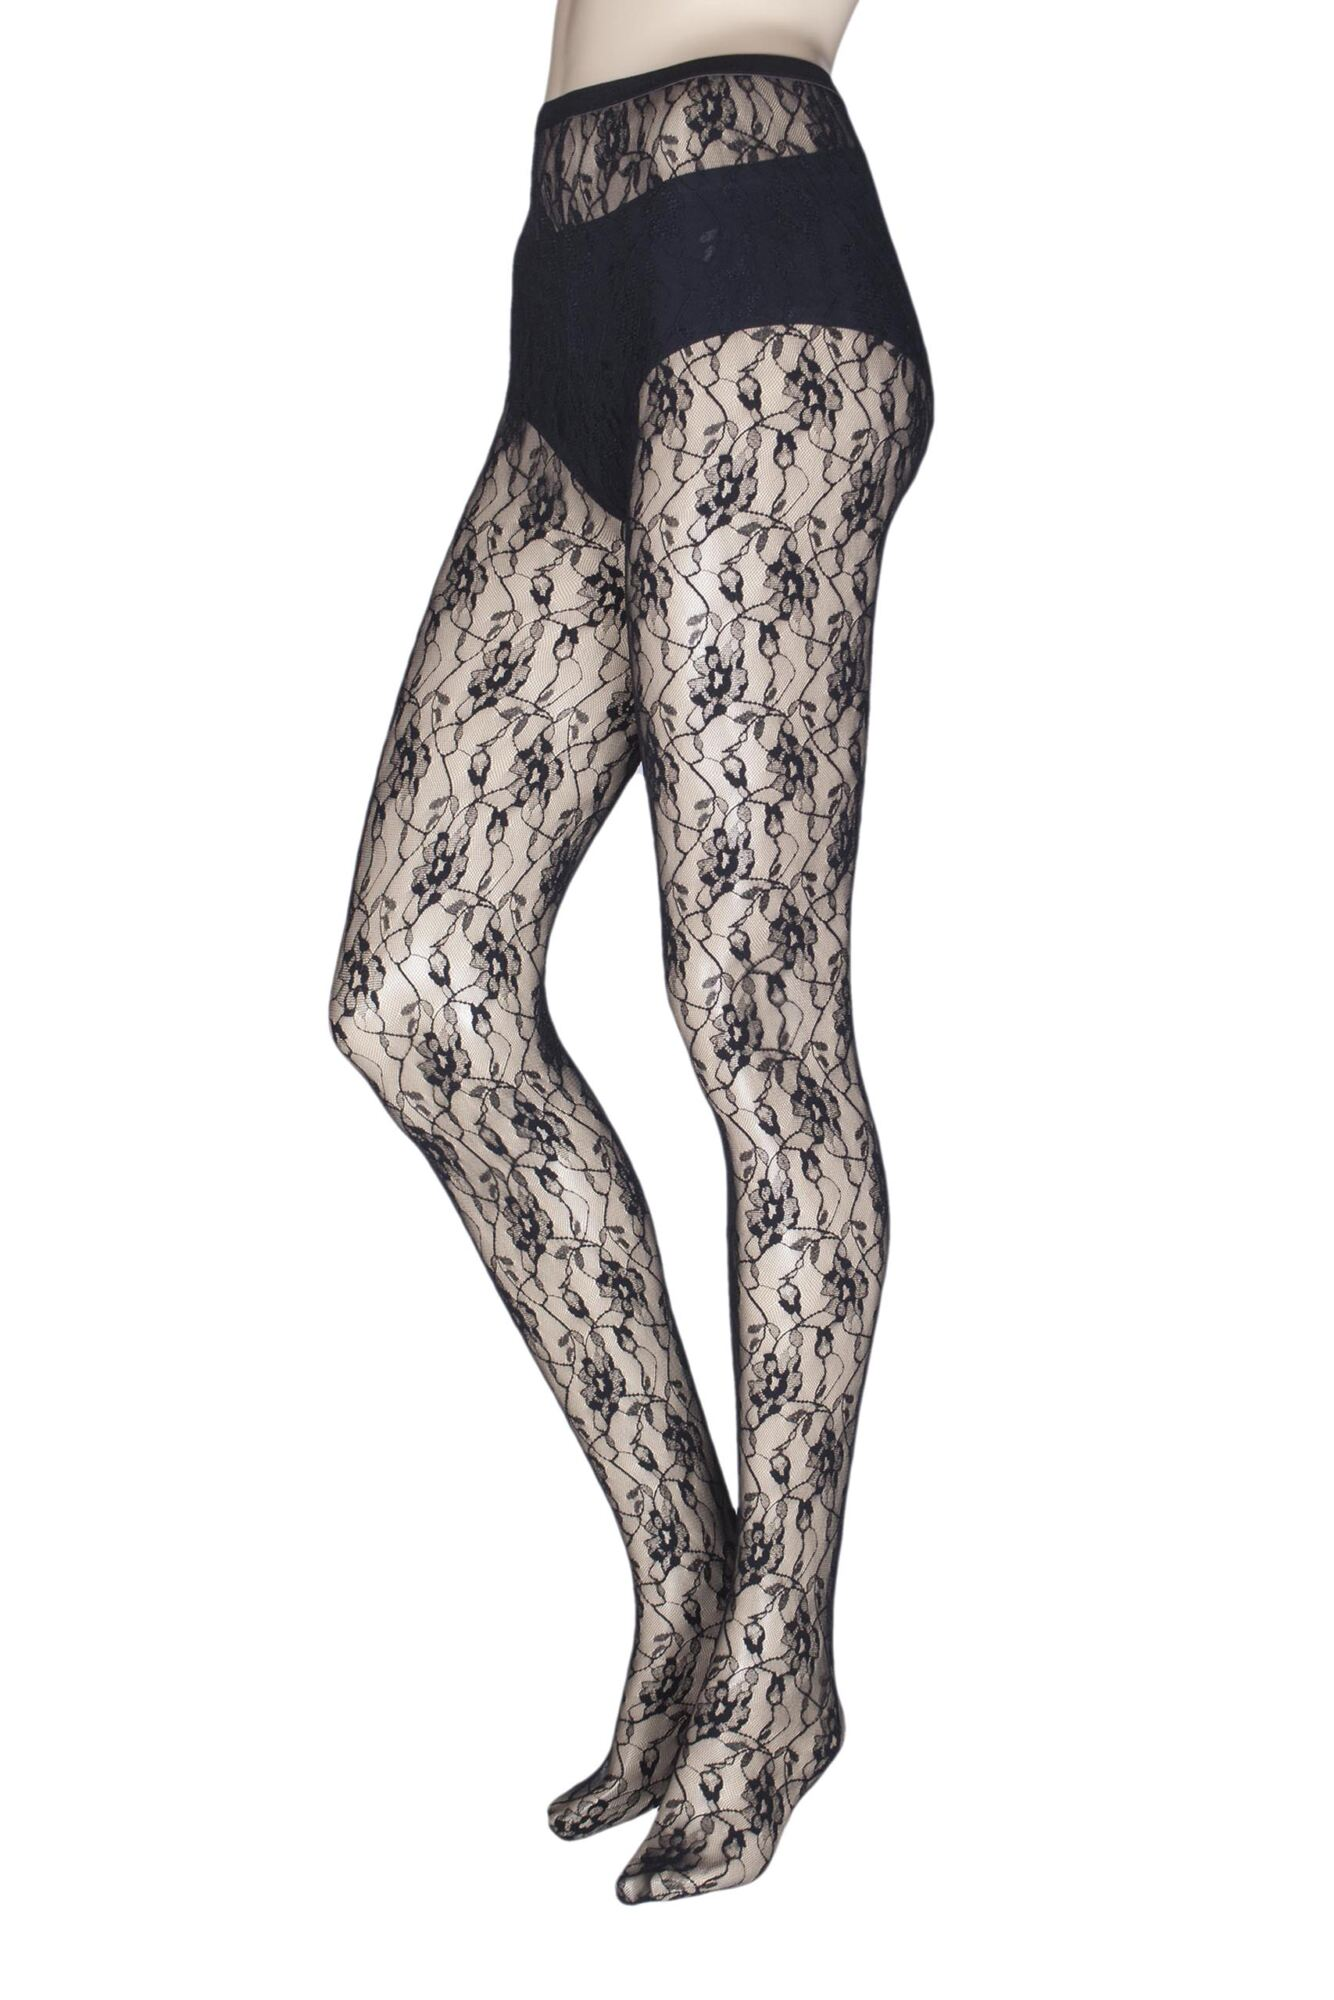 1 Pair Sweet Roses Lace Tights Ladies - Jonathan Aston